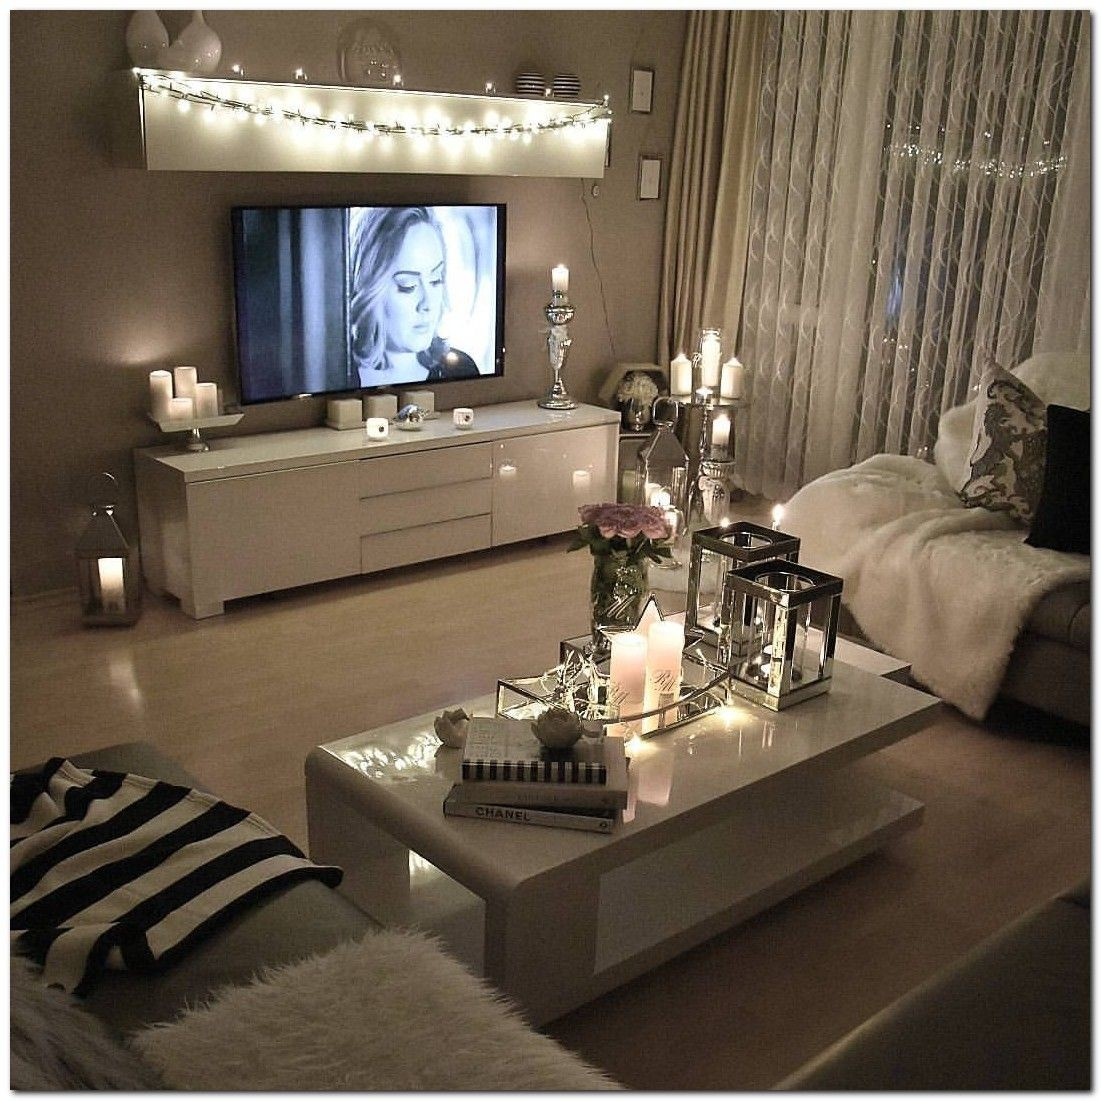 small apartment decorating ideas on a budget apartment decorating ideas on a budget luxury how to decorating CFOBQRD